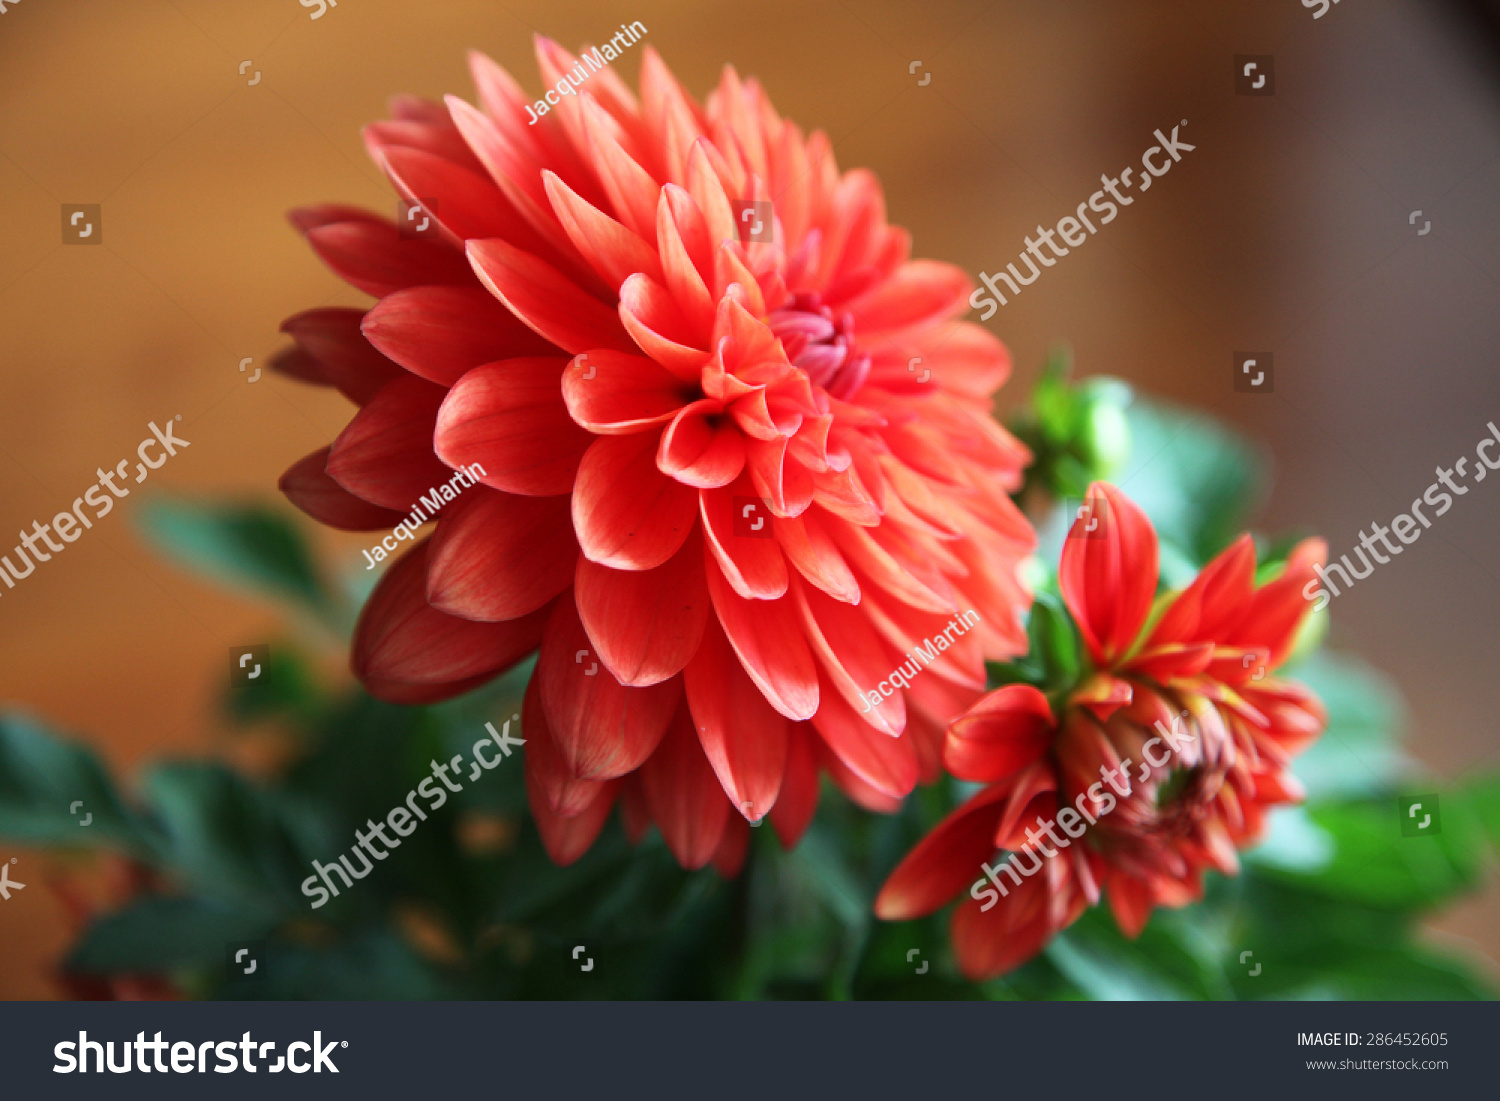 Beautiful orange dahlia flower green leaves stock photo edit now beautiful orange dahlia flower with green leaves on wooden background izmirmasajfo